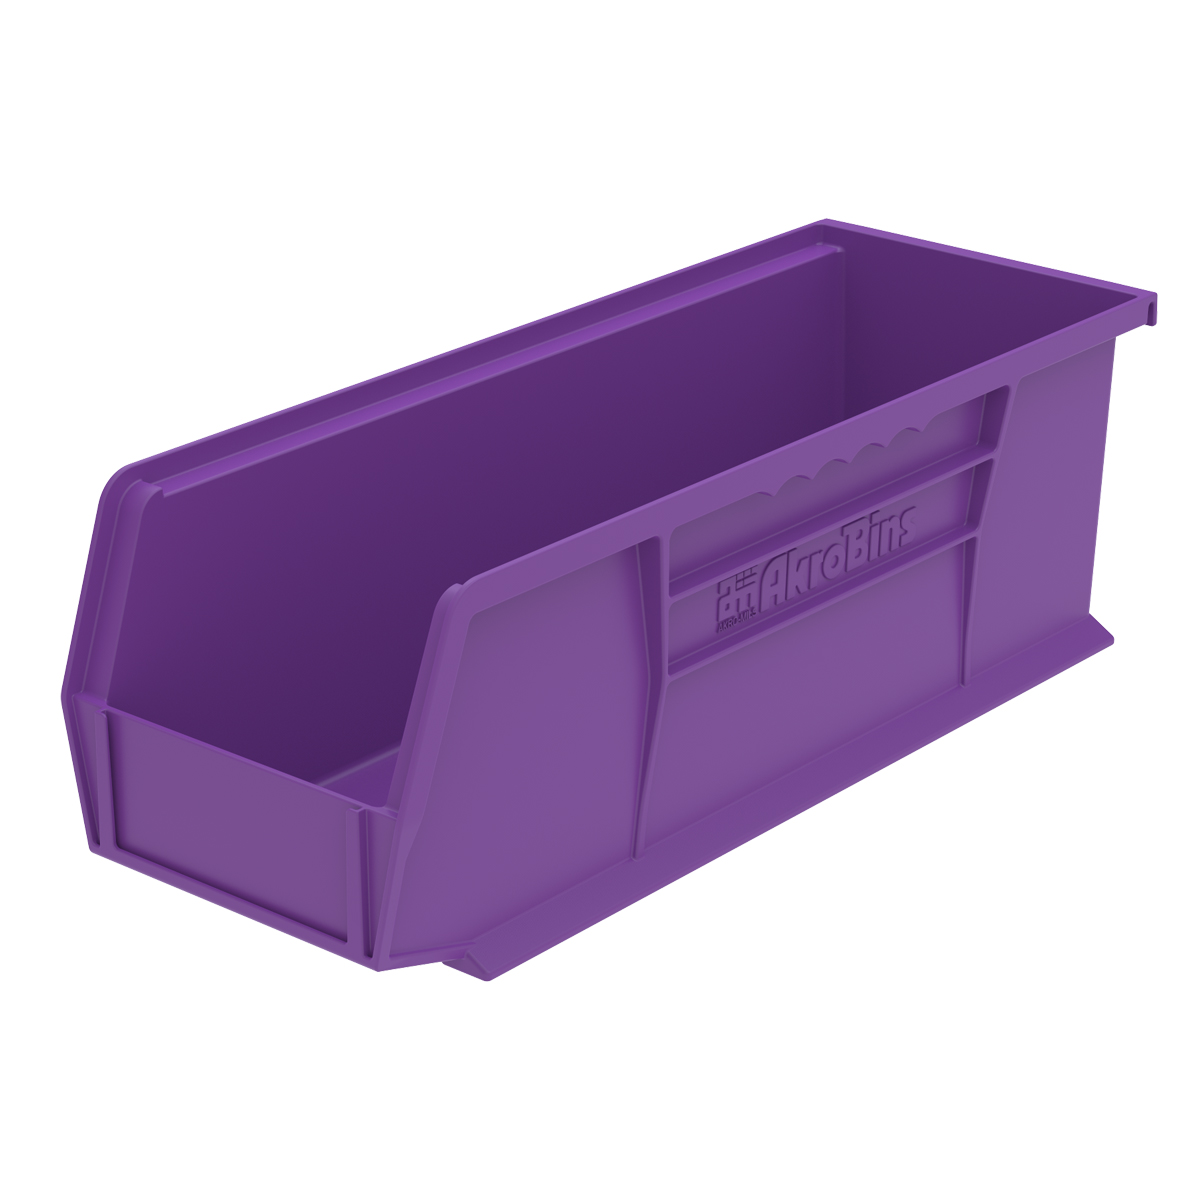 AkroBin 14-3/4 x 5-1/2 x 5, Purple (30234PURPL).  This item sold in carton quantities of 12.